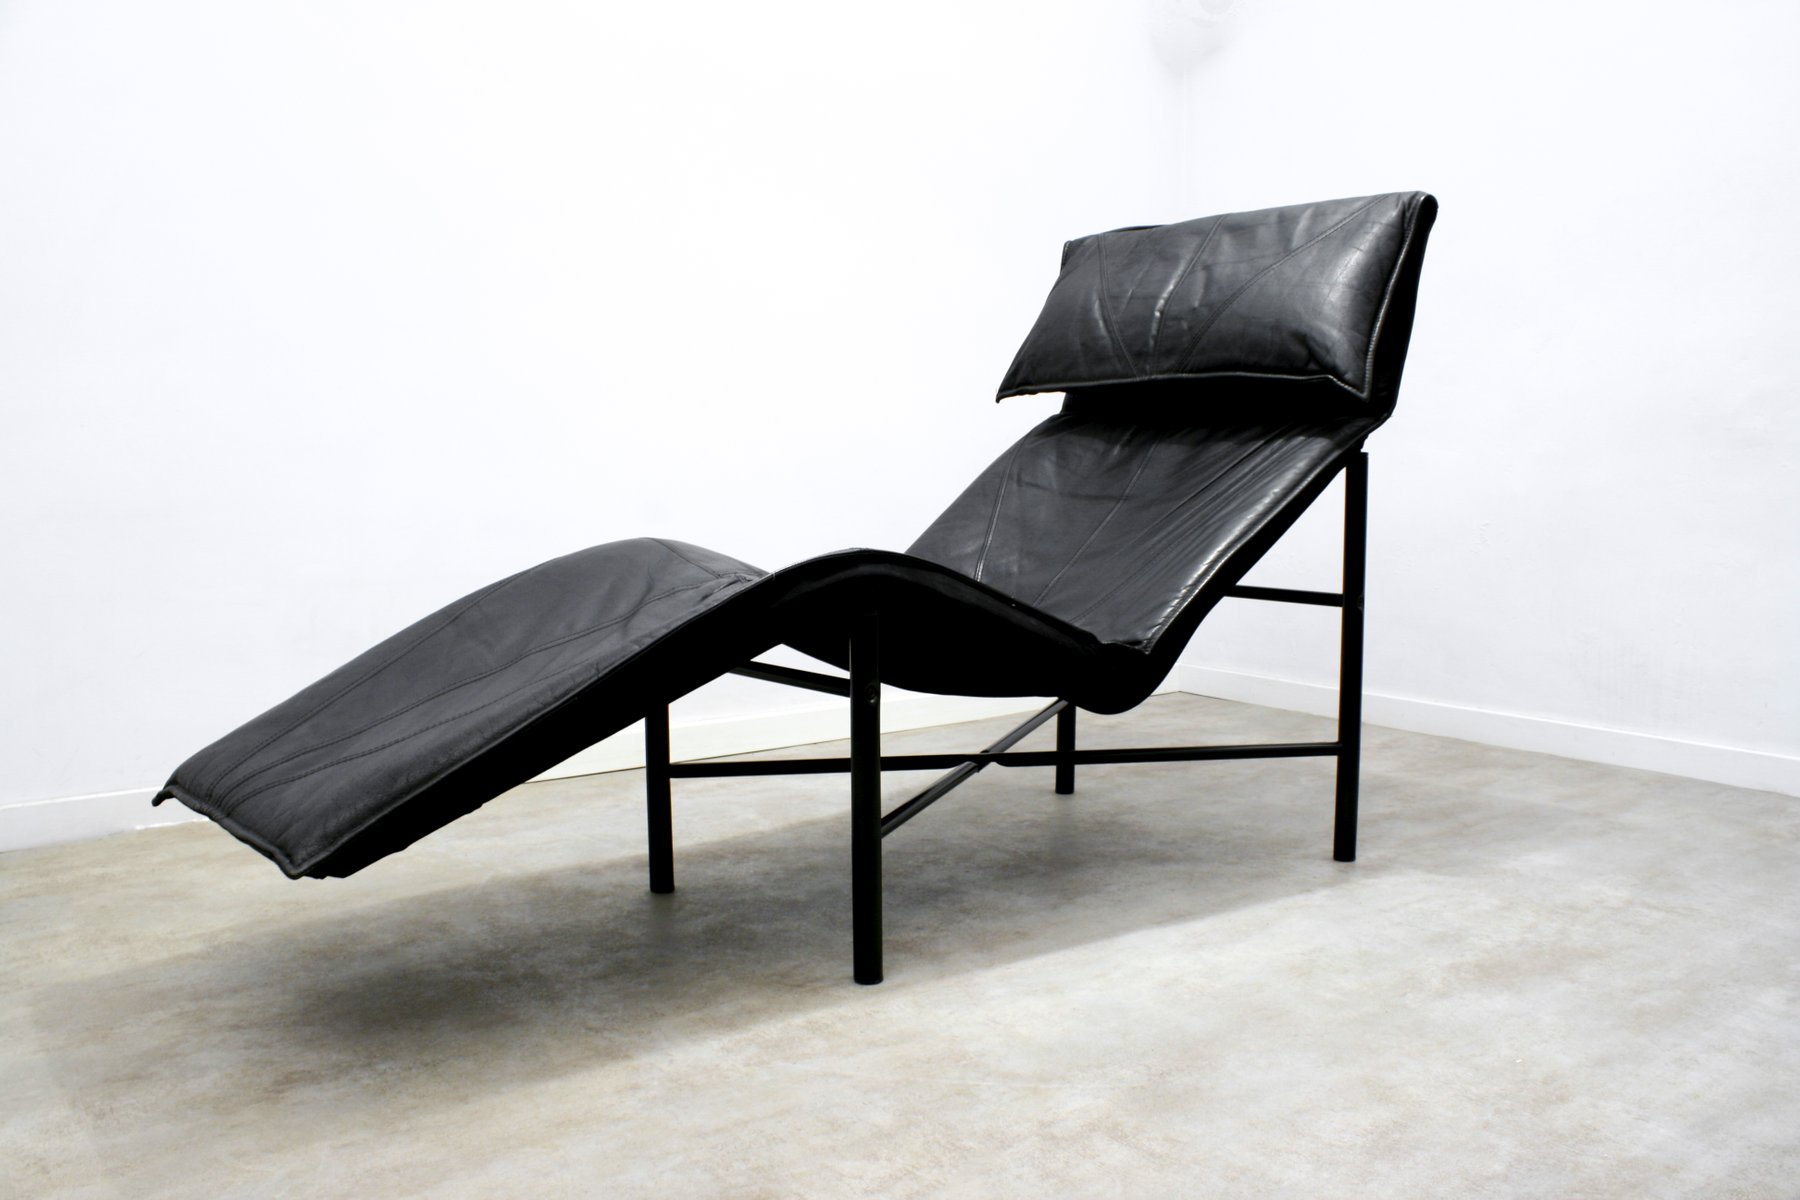 Black leather skye chaise longue by tord bj rklund for ikea 1980s for sale at pamono for Chaise ikea